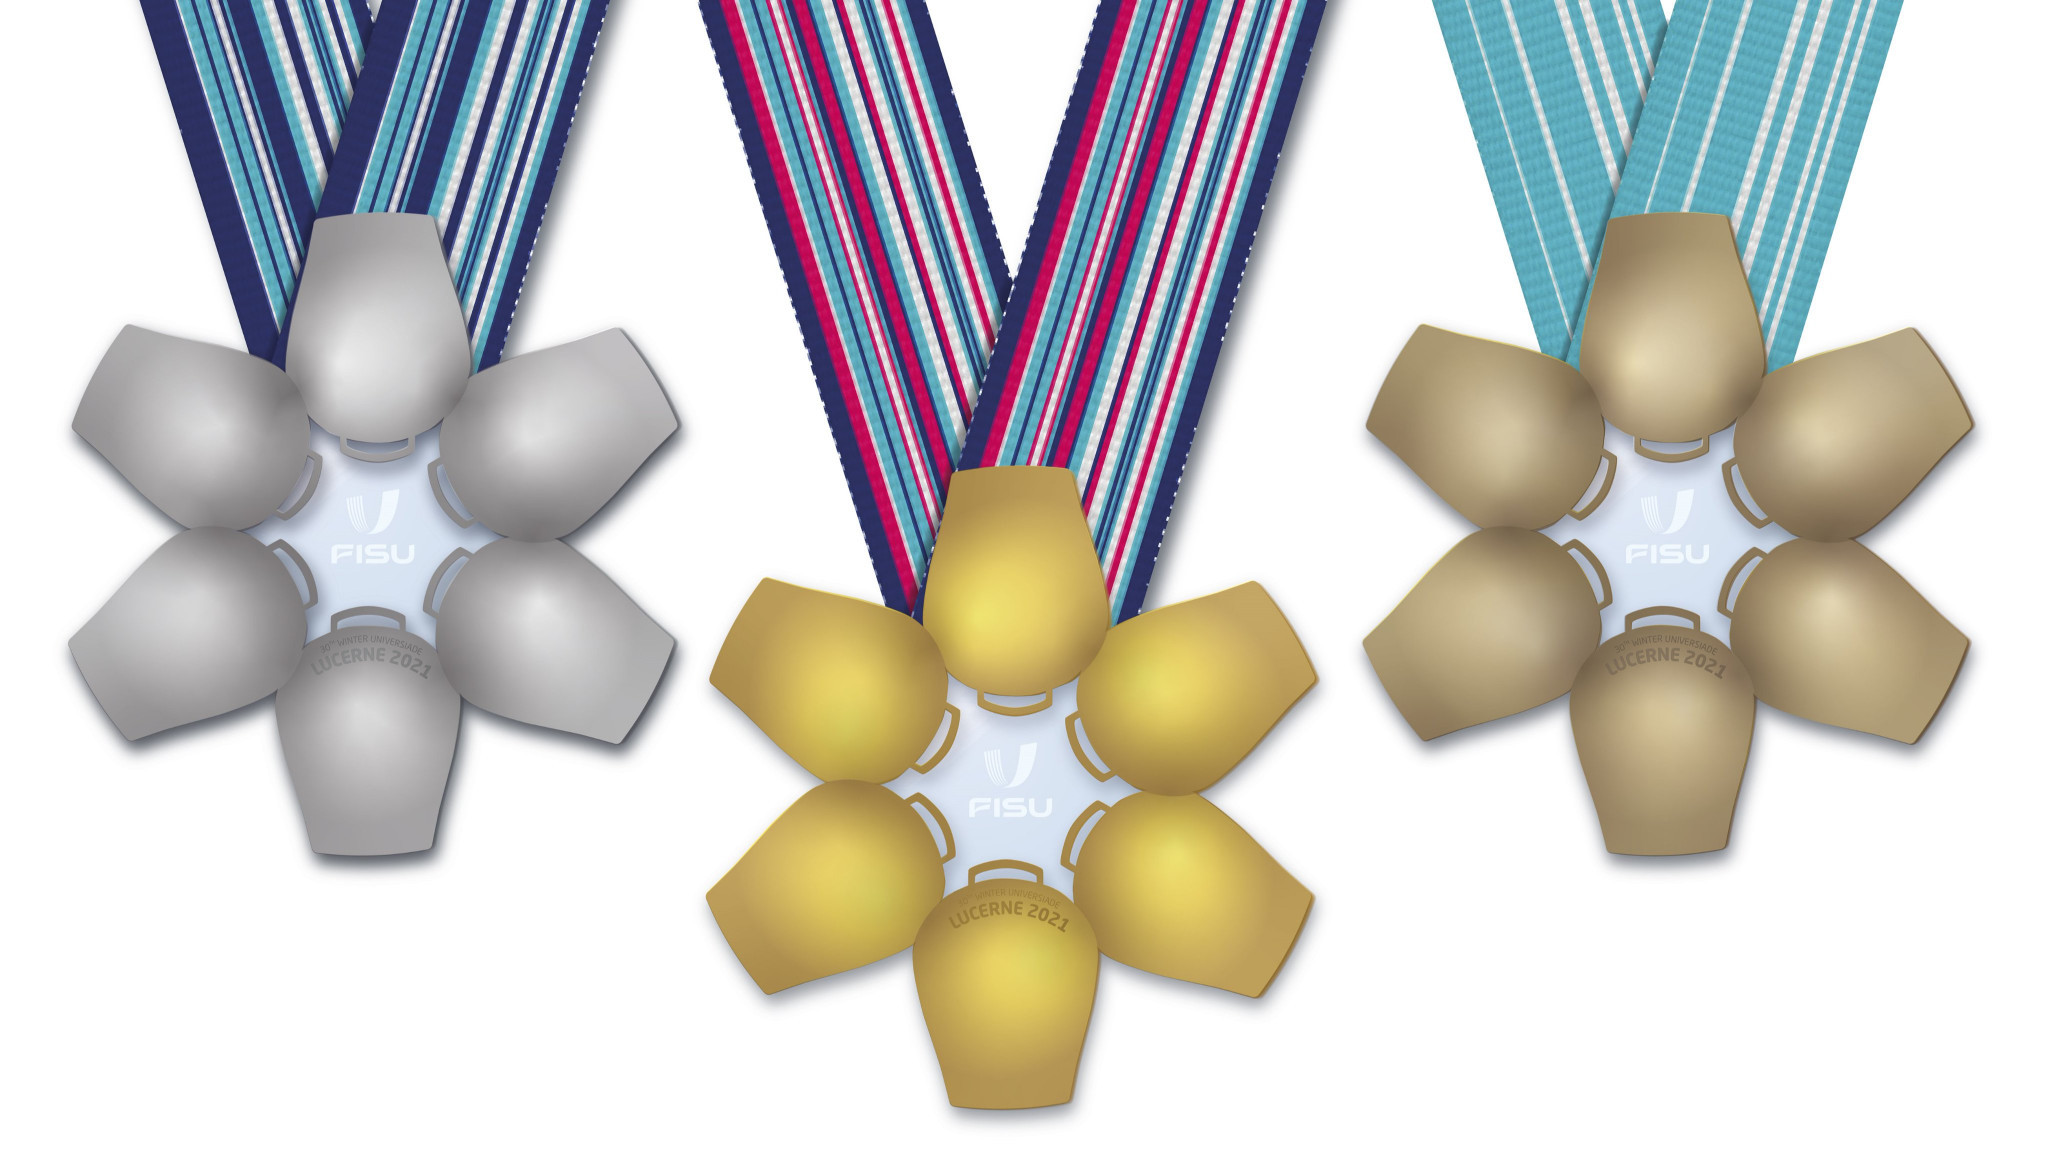 The medals for the 2021 Winter World University Games in Swiss city Lucerne have been unveiled ©Lucerne 2021